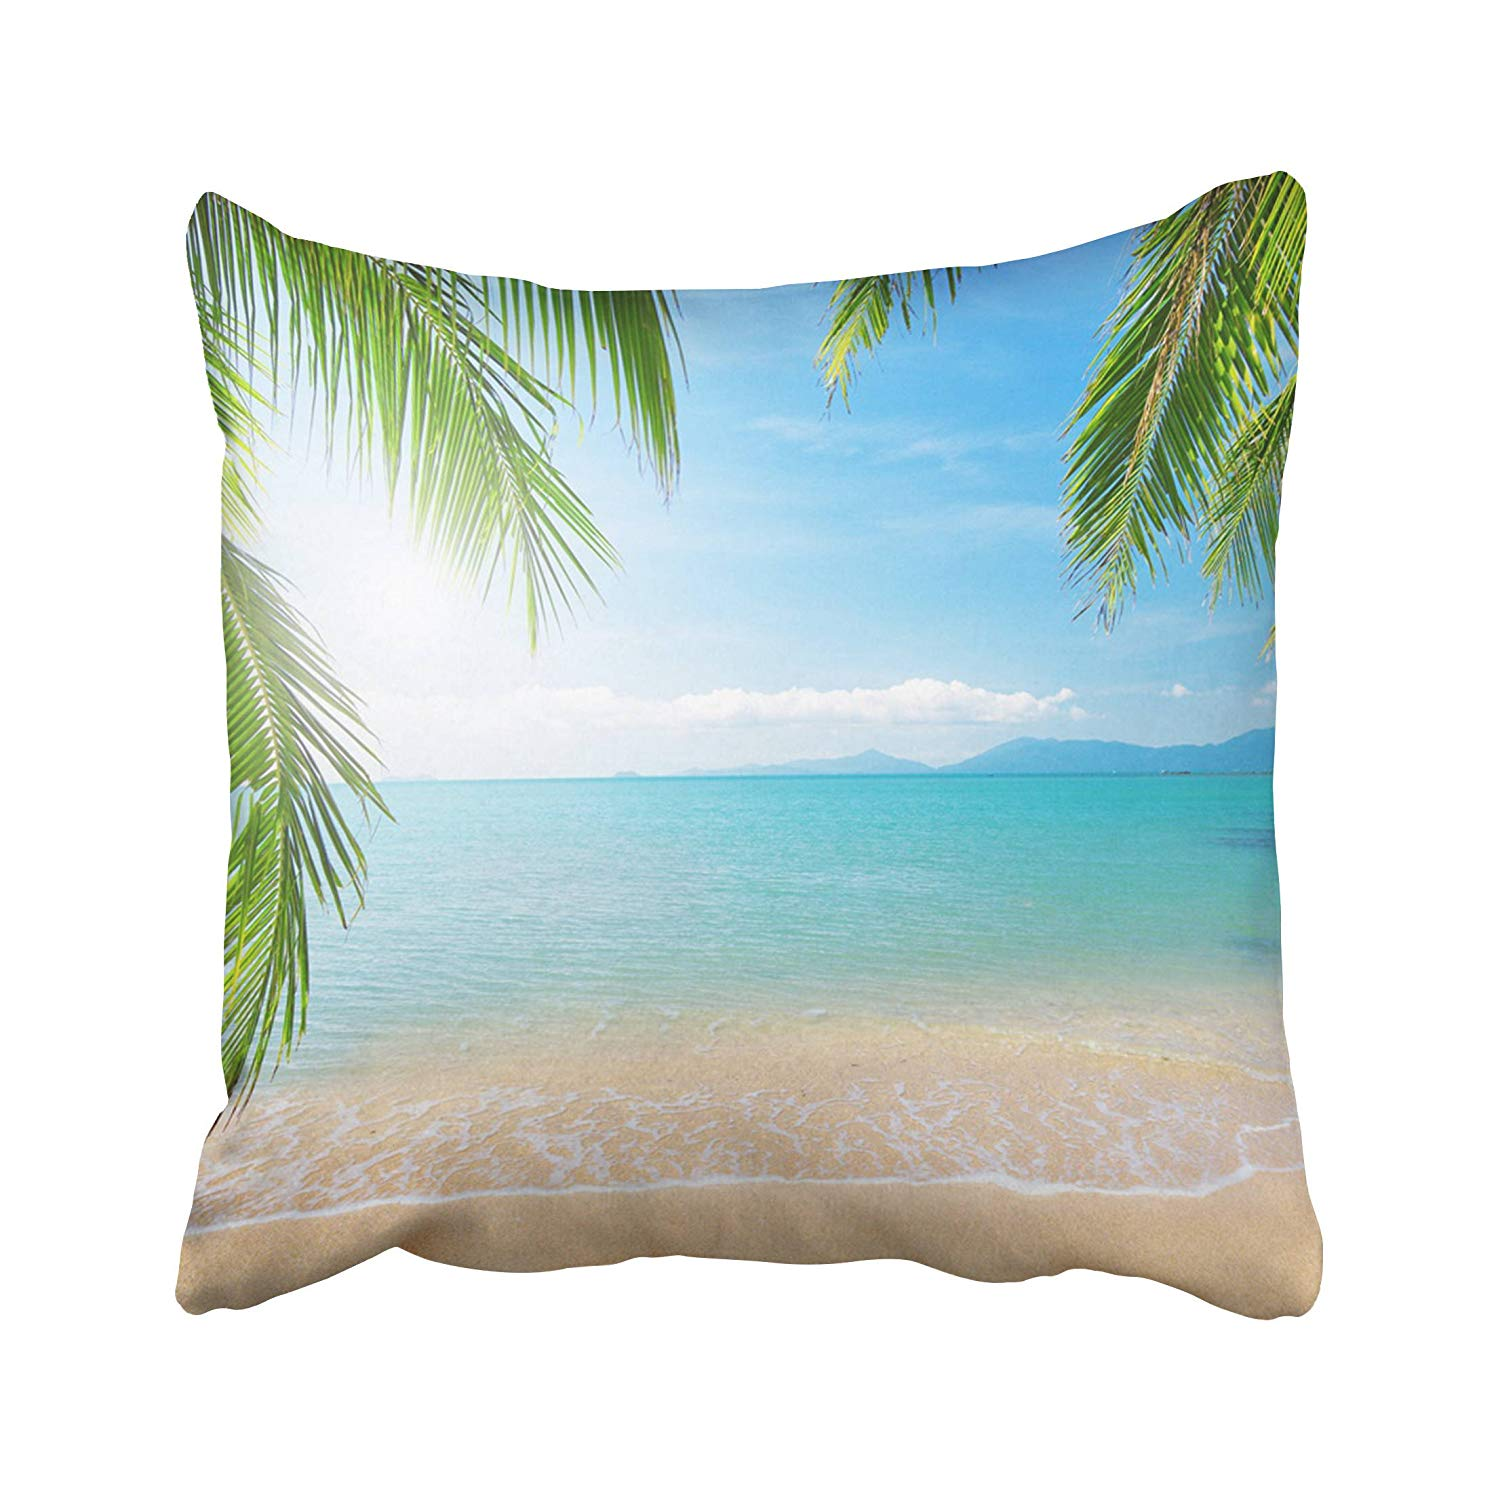 BPBOP Tree Palm And Tropical Beach Summer Sea Sand Sunset Ocean Beauty Thailand Pillowcase Pillow Cushion Cover 16x16 inches